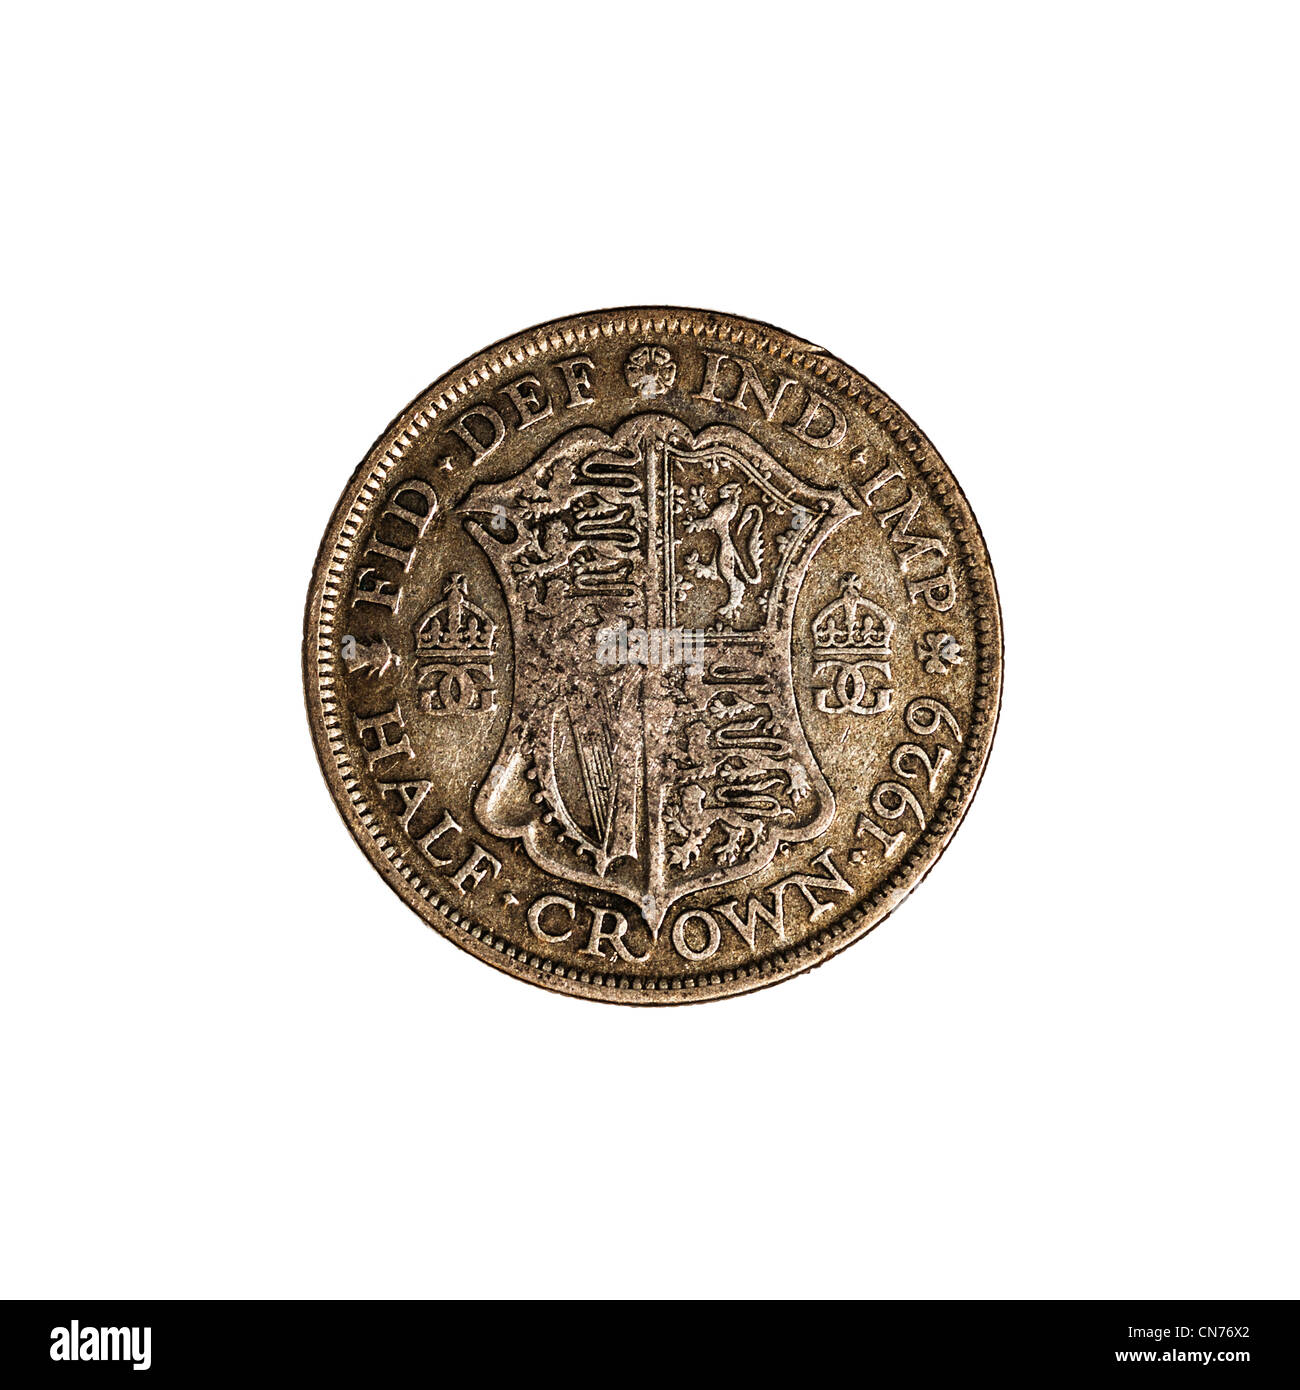 An English pre decimal half crown coin dated 1929 on a white background - Stock Image